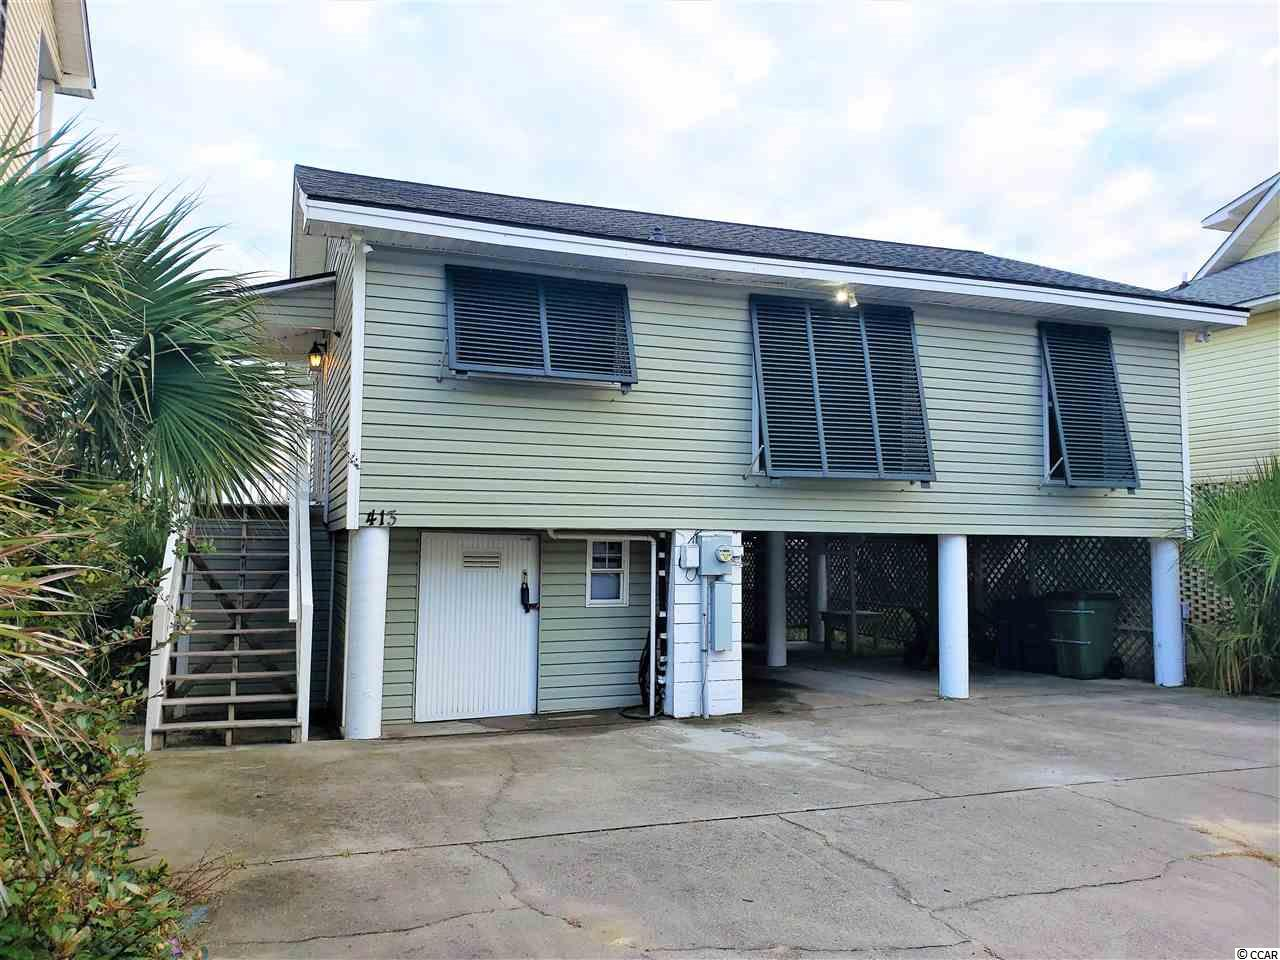 BEACHFRONT FAMILY COTTAGE, 24' X 8' BACK DECK OVERLOOKS THE BEACH AND OCEAN. THERE IS NOTHING MORE AWE INSPIRING THAN THE SUNRISE OVER THE ATLANTIC!. LARGE STORAGE ROOM UNDER THE HOUSE FOR SANDY BEACH GEAR, BICYCLES, FISHING AND BOATING GEAR, ETC. FURNISHED. THIS IS NOSTALGIC BEACH LIVING. DO NOT BE IN ALL IN A HURRY WHEN YOU COME HERE. COME HERE TO ENJOY THE BEACH, THE OCEAN, YOUR FAMILY, AND LEAVE ALL THAT RAT RACE BEHIND! YOU COME HERE TO MAKE MEMORIES THAT WILL LAST A LIFETIME AND MORE!